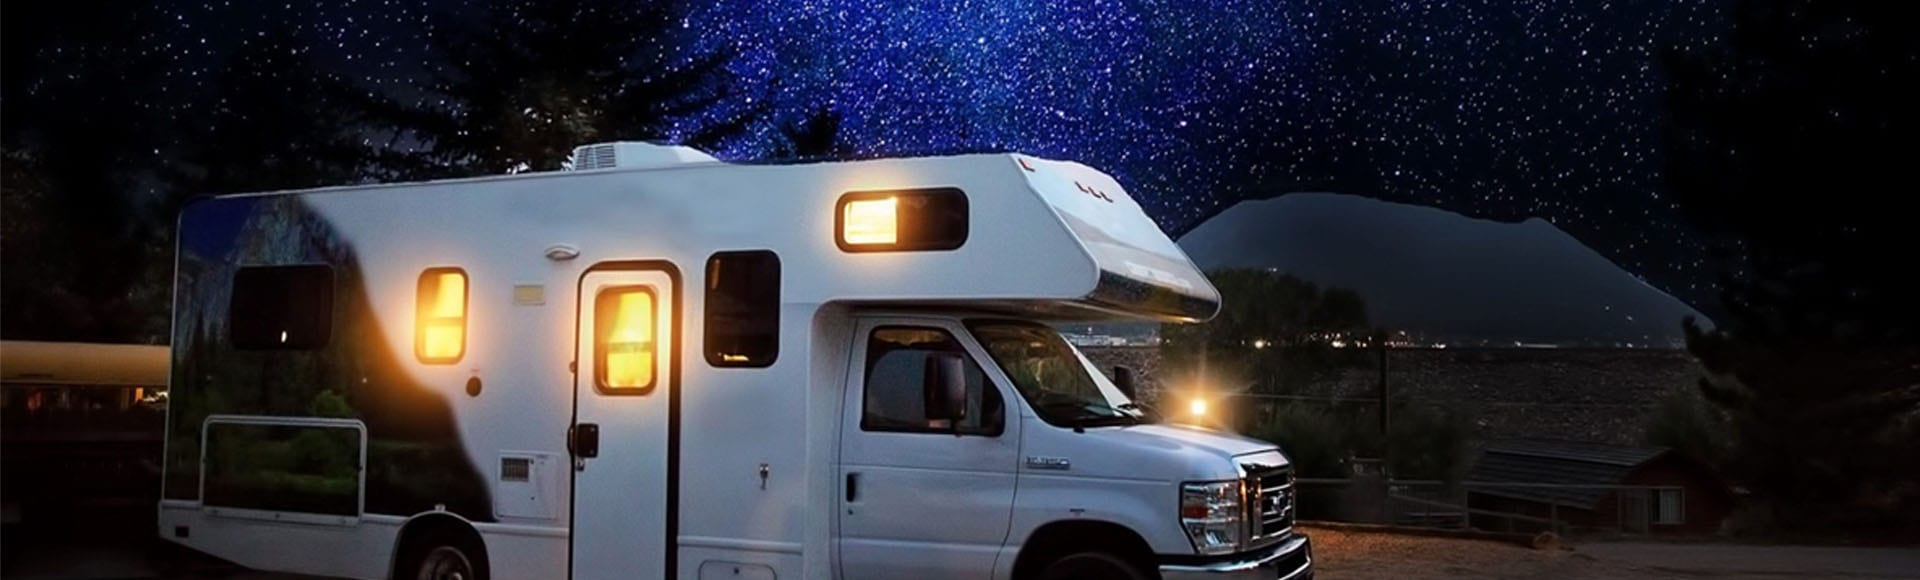 Recreational vehicle fifth wheel trailer in campsite with campfire and Christmas lights and decorations at dusk or night.